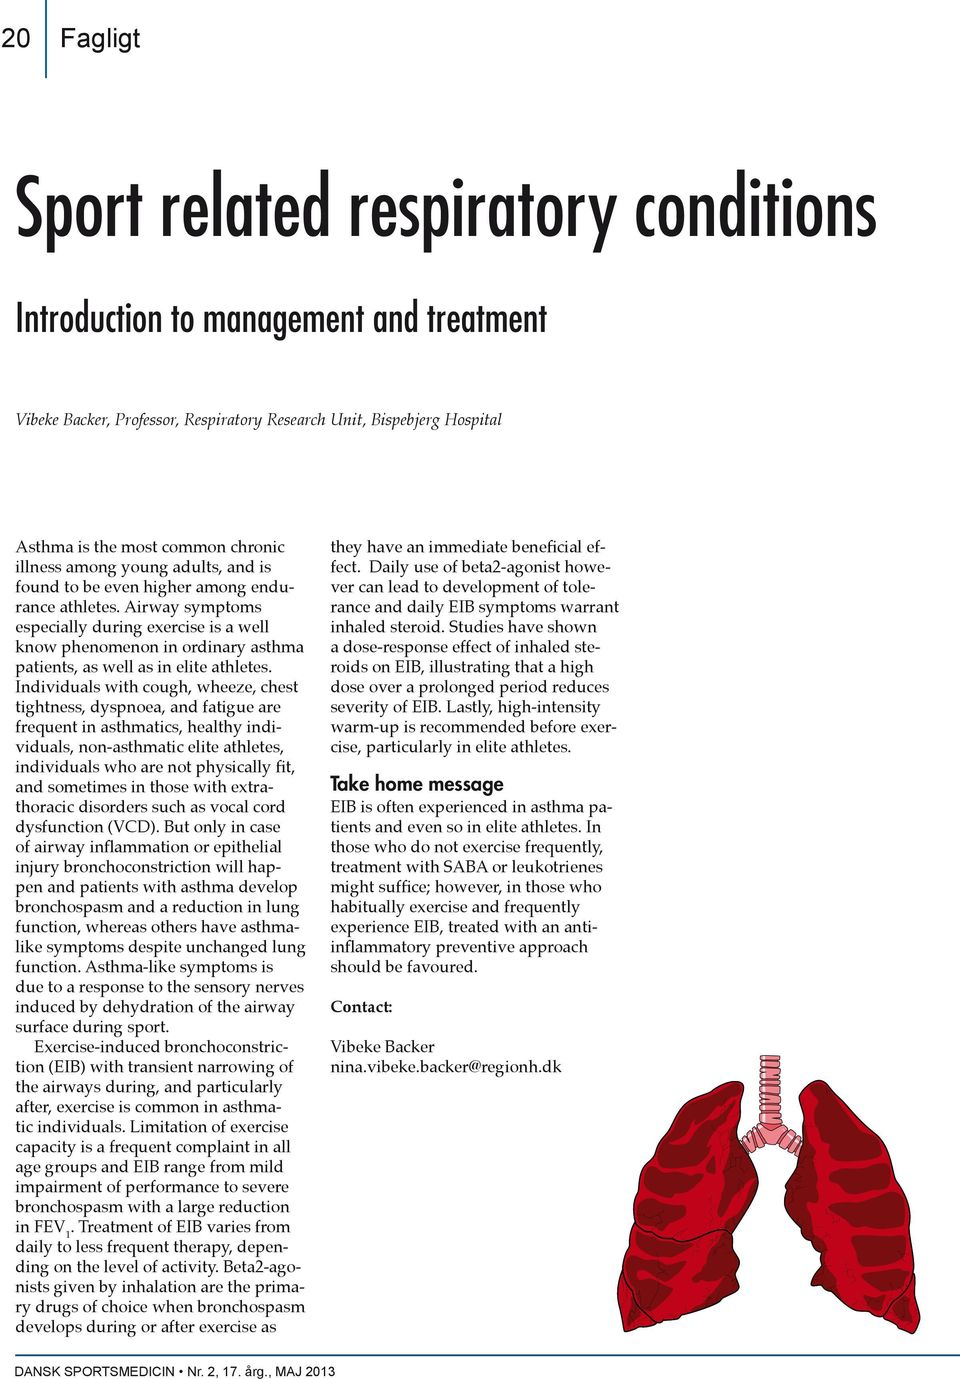 Airway symptoms especially during exercise is a well know phenomenon in ordinary asthma patients, as well as in elite athletes.